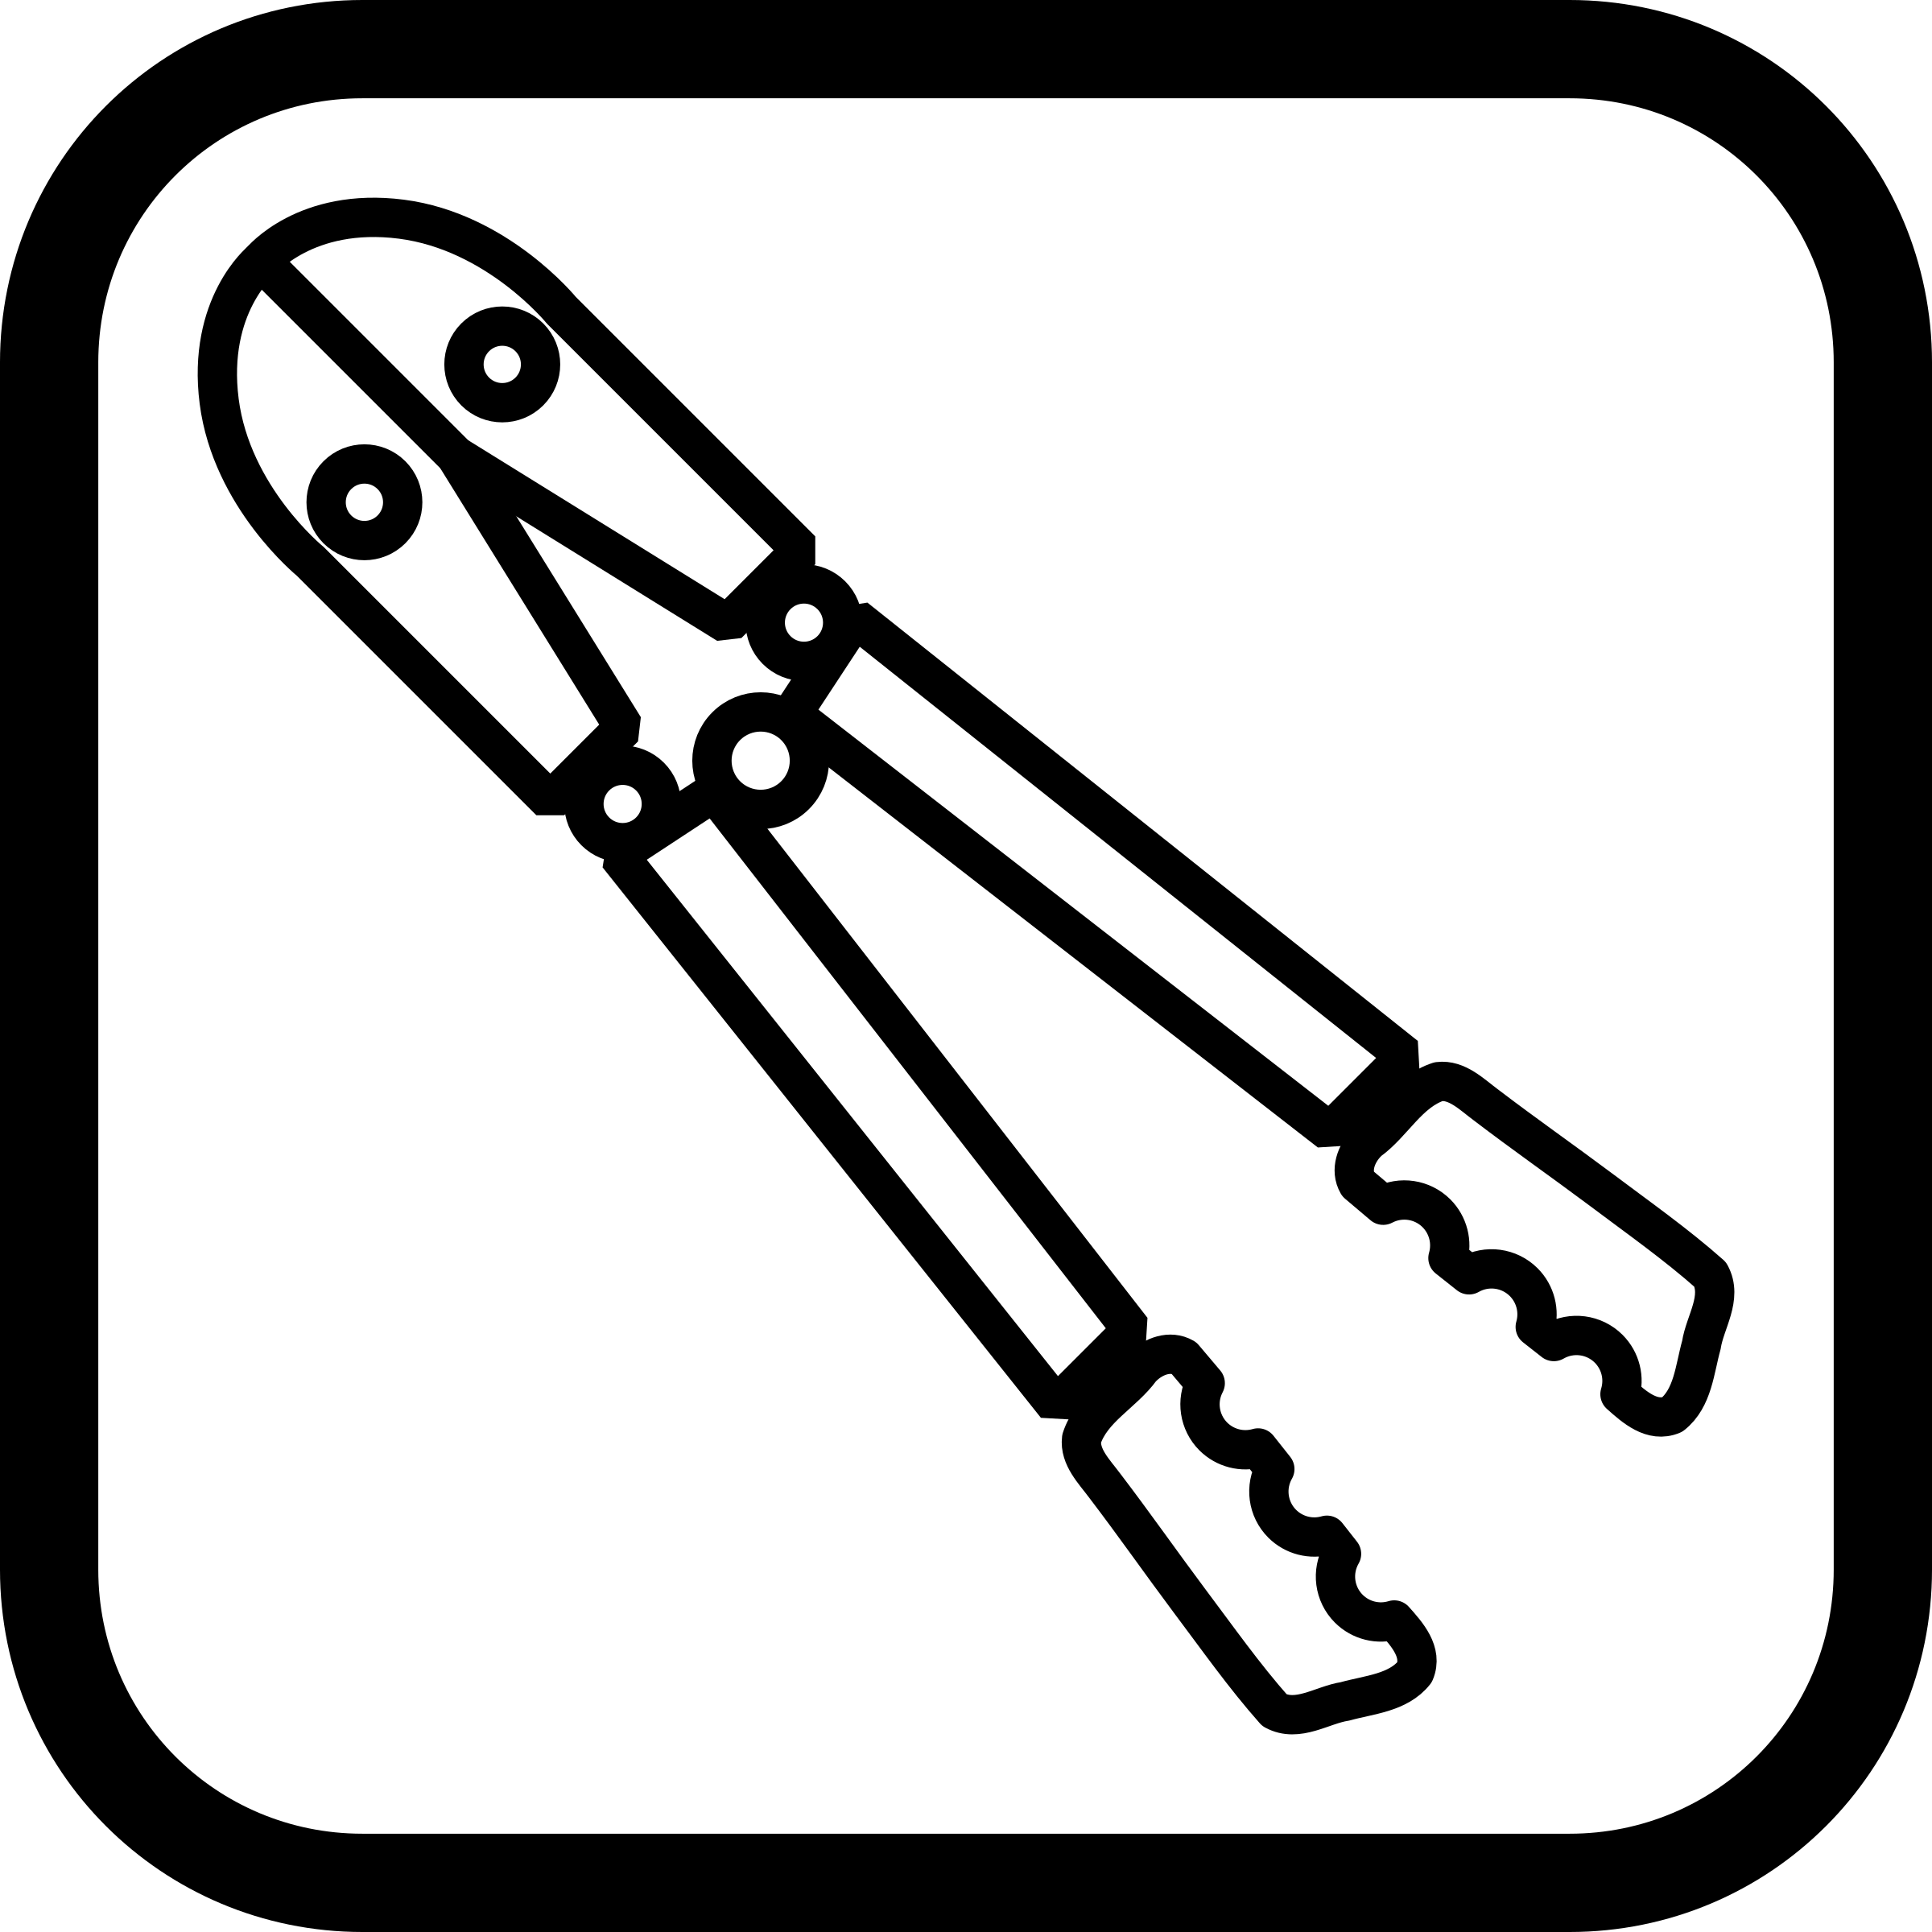 Bolt Cutter Icon Vector Clipart image.